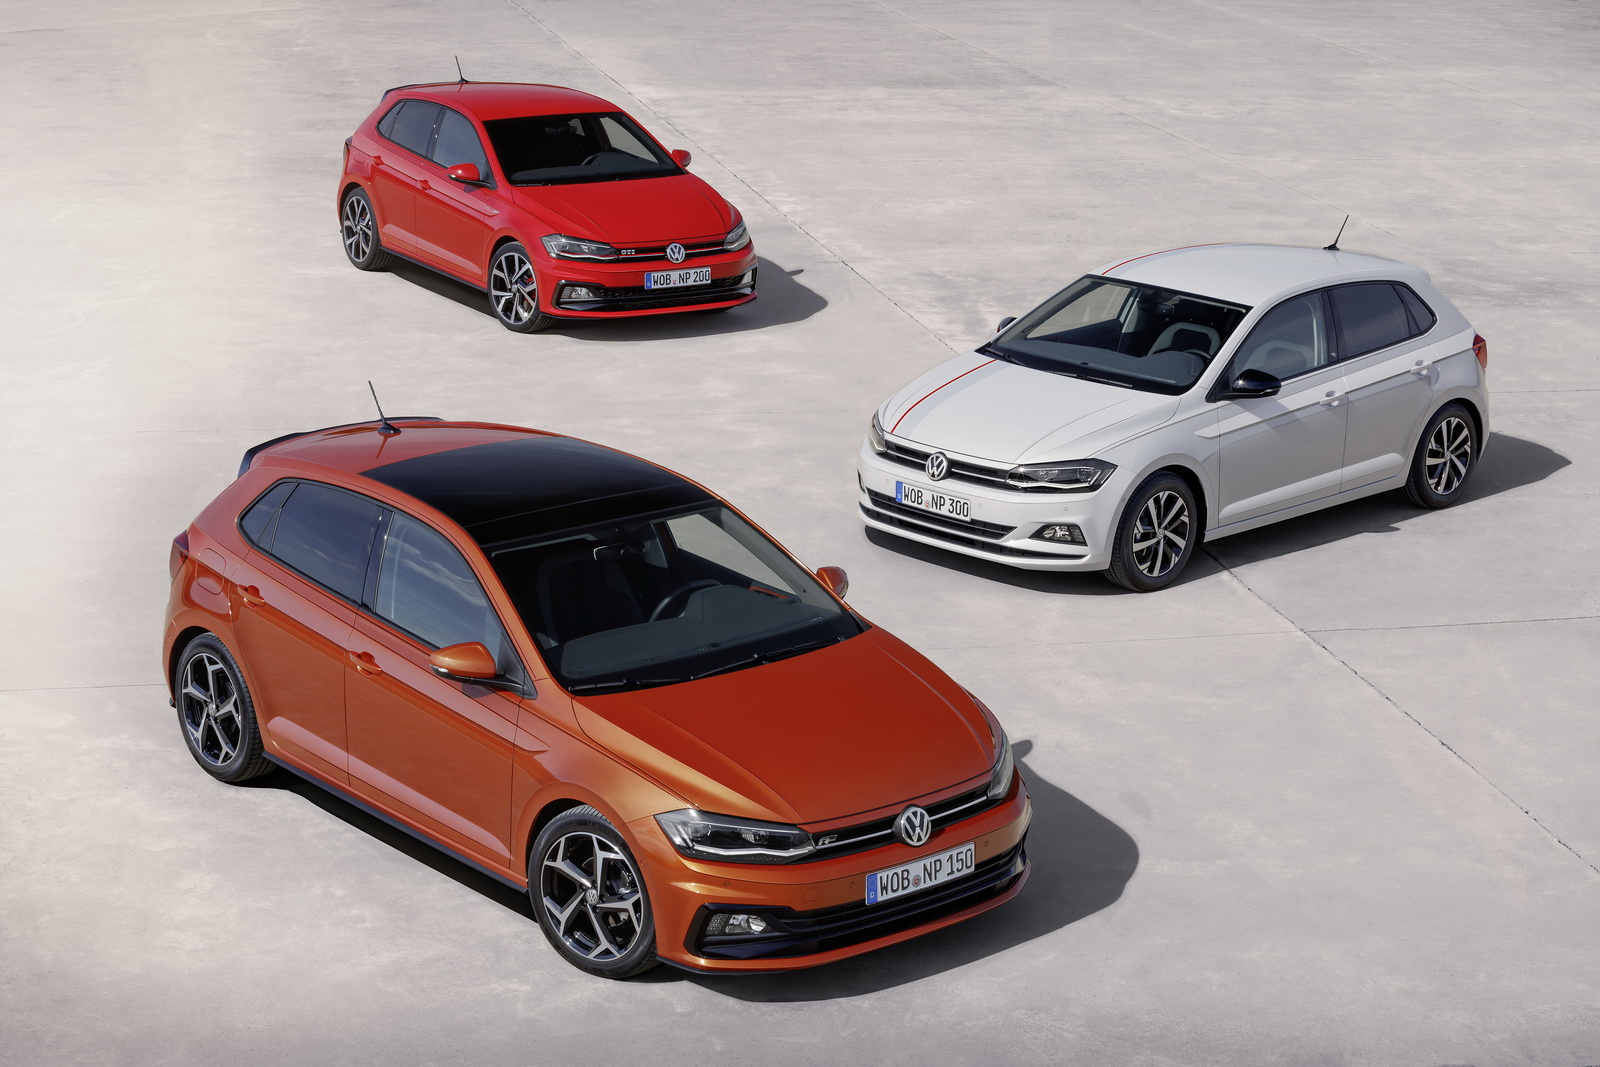 Volkswagen Polo and Polo GTI 2018 (56)